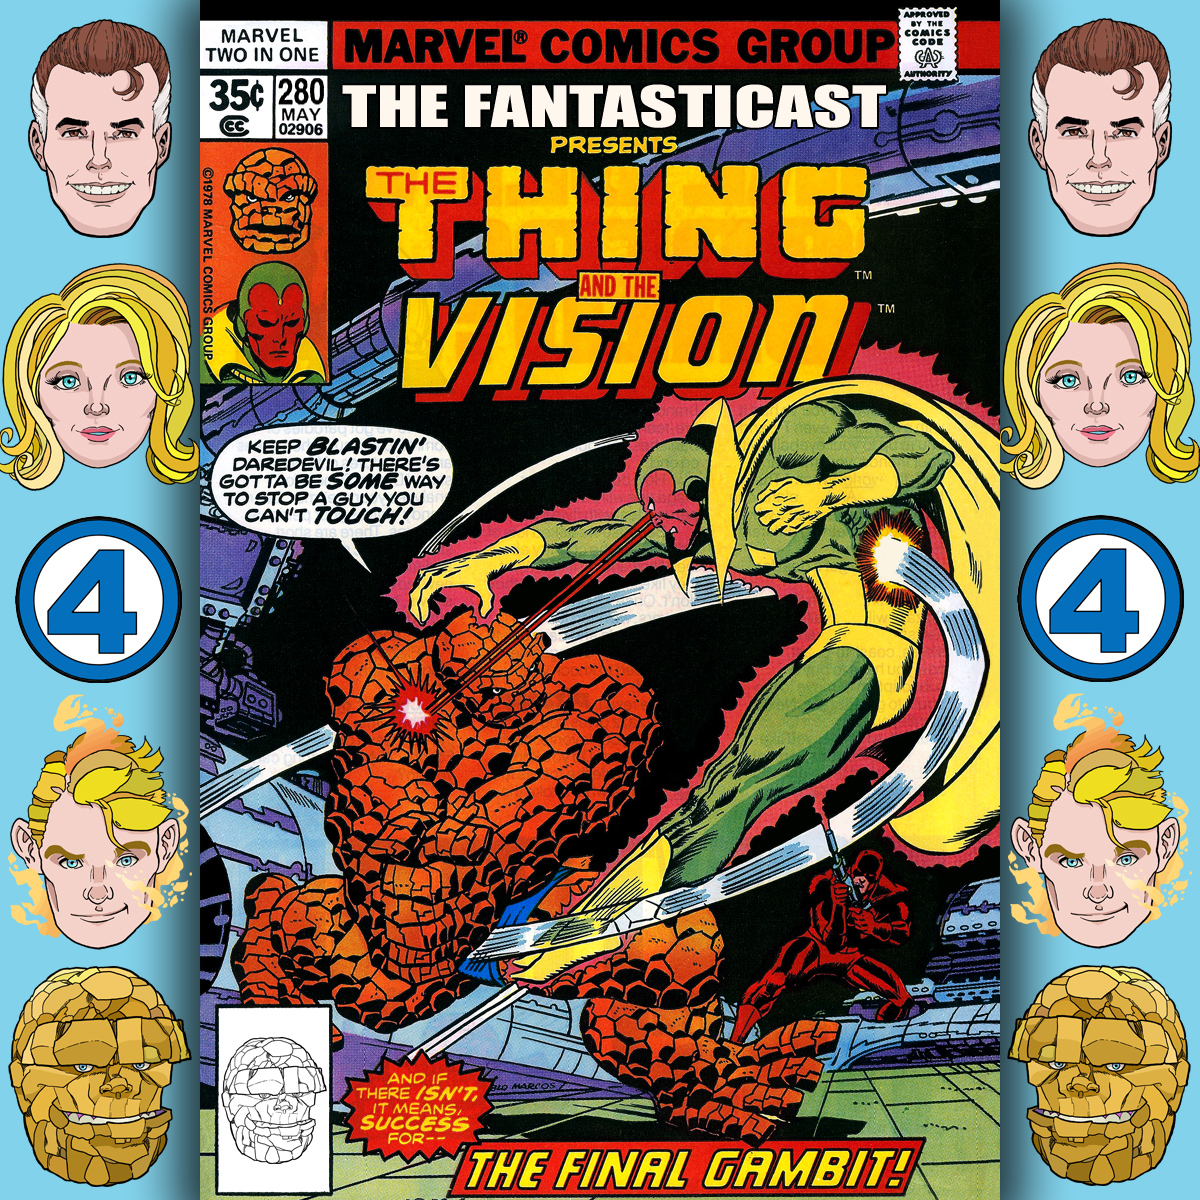 The Fantasticast Episode 280